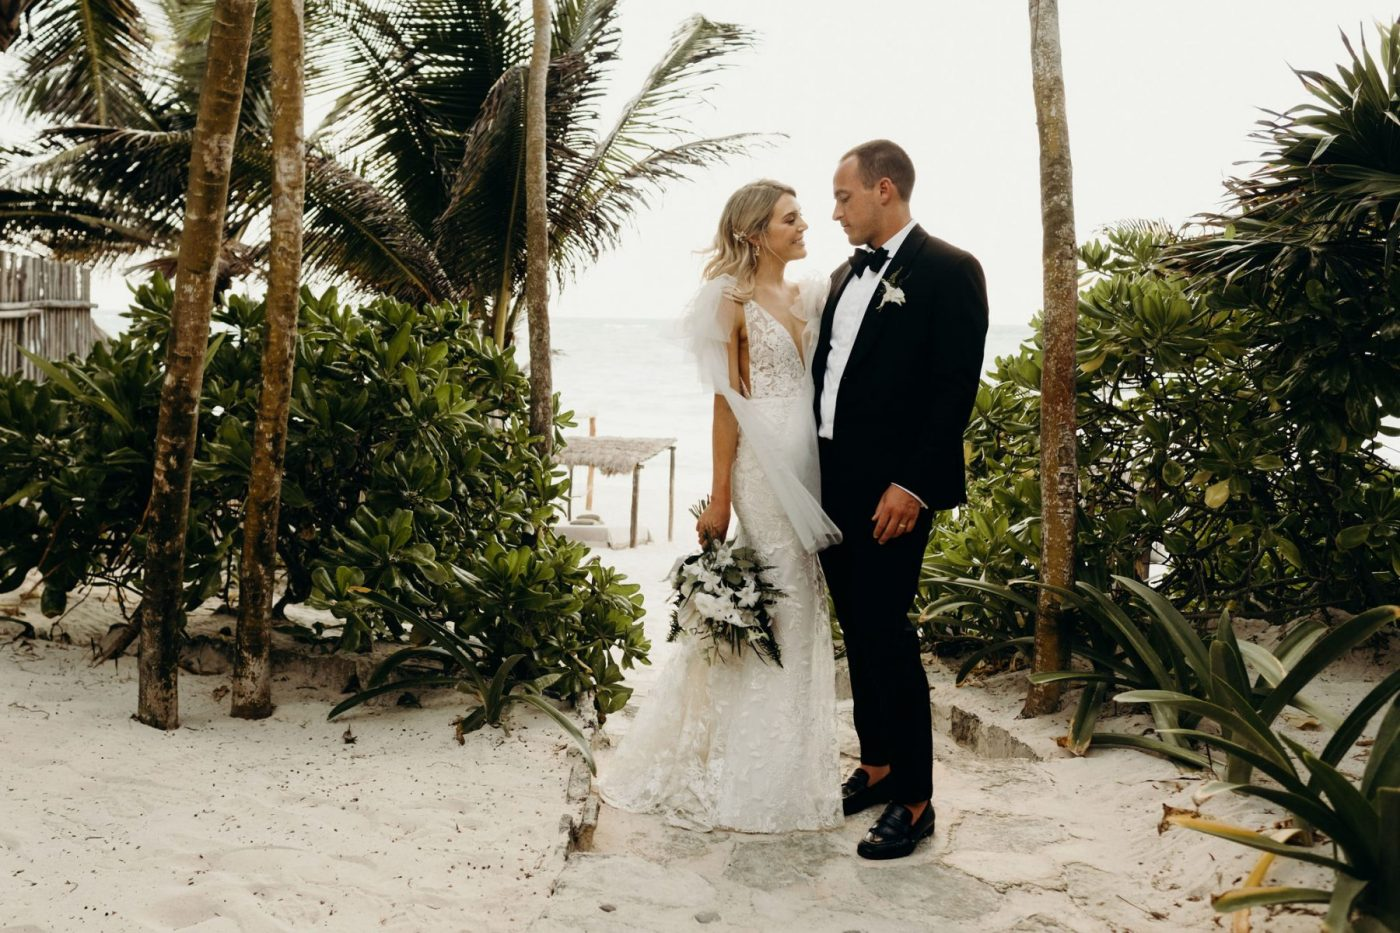 The Real Costs of Getting Married Abroad